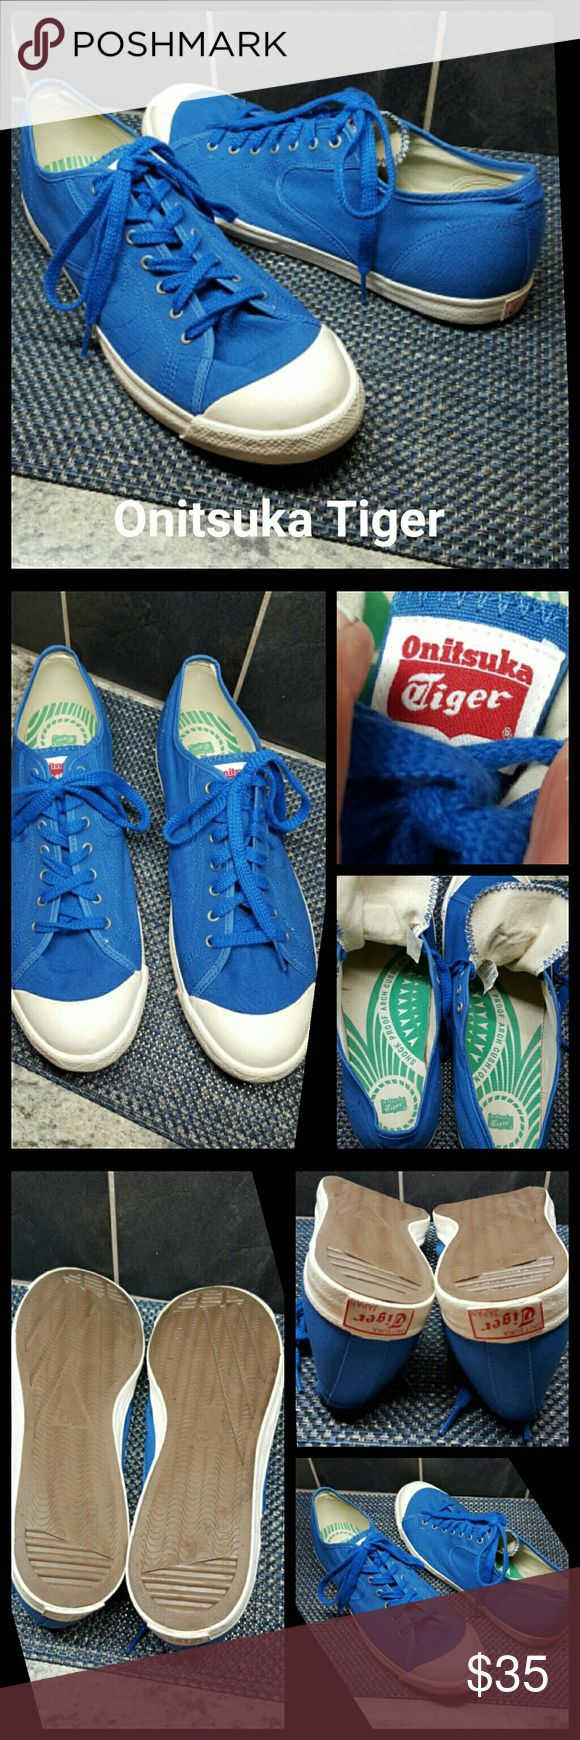 ONITSUKA TIGER Canvas Shoes Mens Canvas Shoes  Excellent Condition  Photo 5, showing 1 little spot on the top of each shoe. Very Comfortable Shoe True to size  No trades  Bundle and save  Resonable offers considered  No modeling Onitsuka Tiger Shoes Sneakers